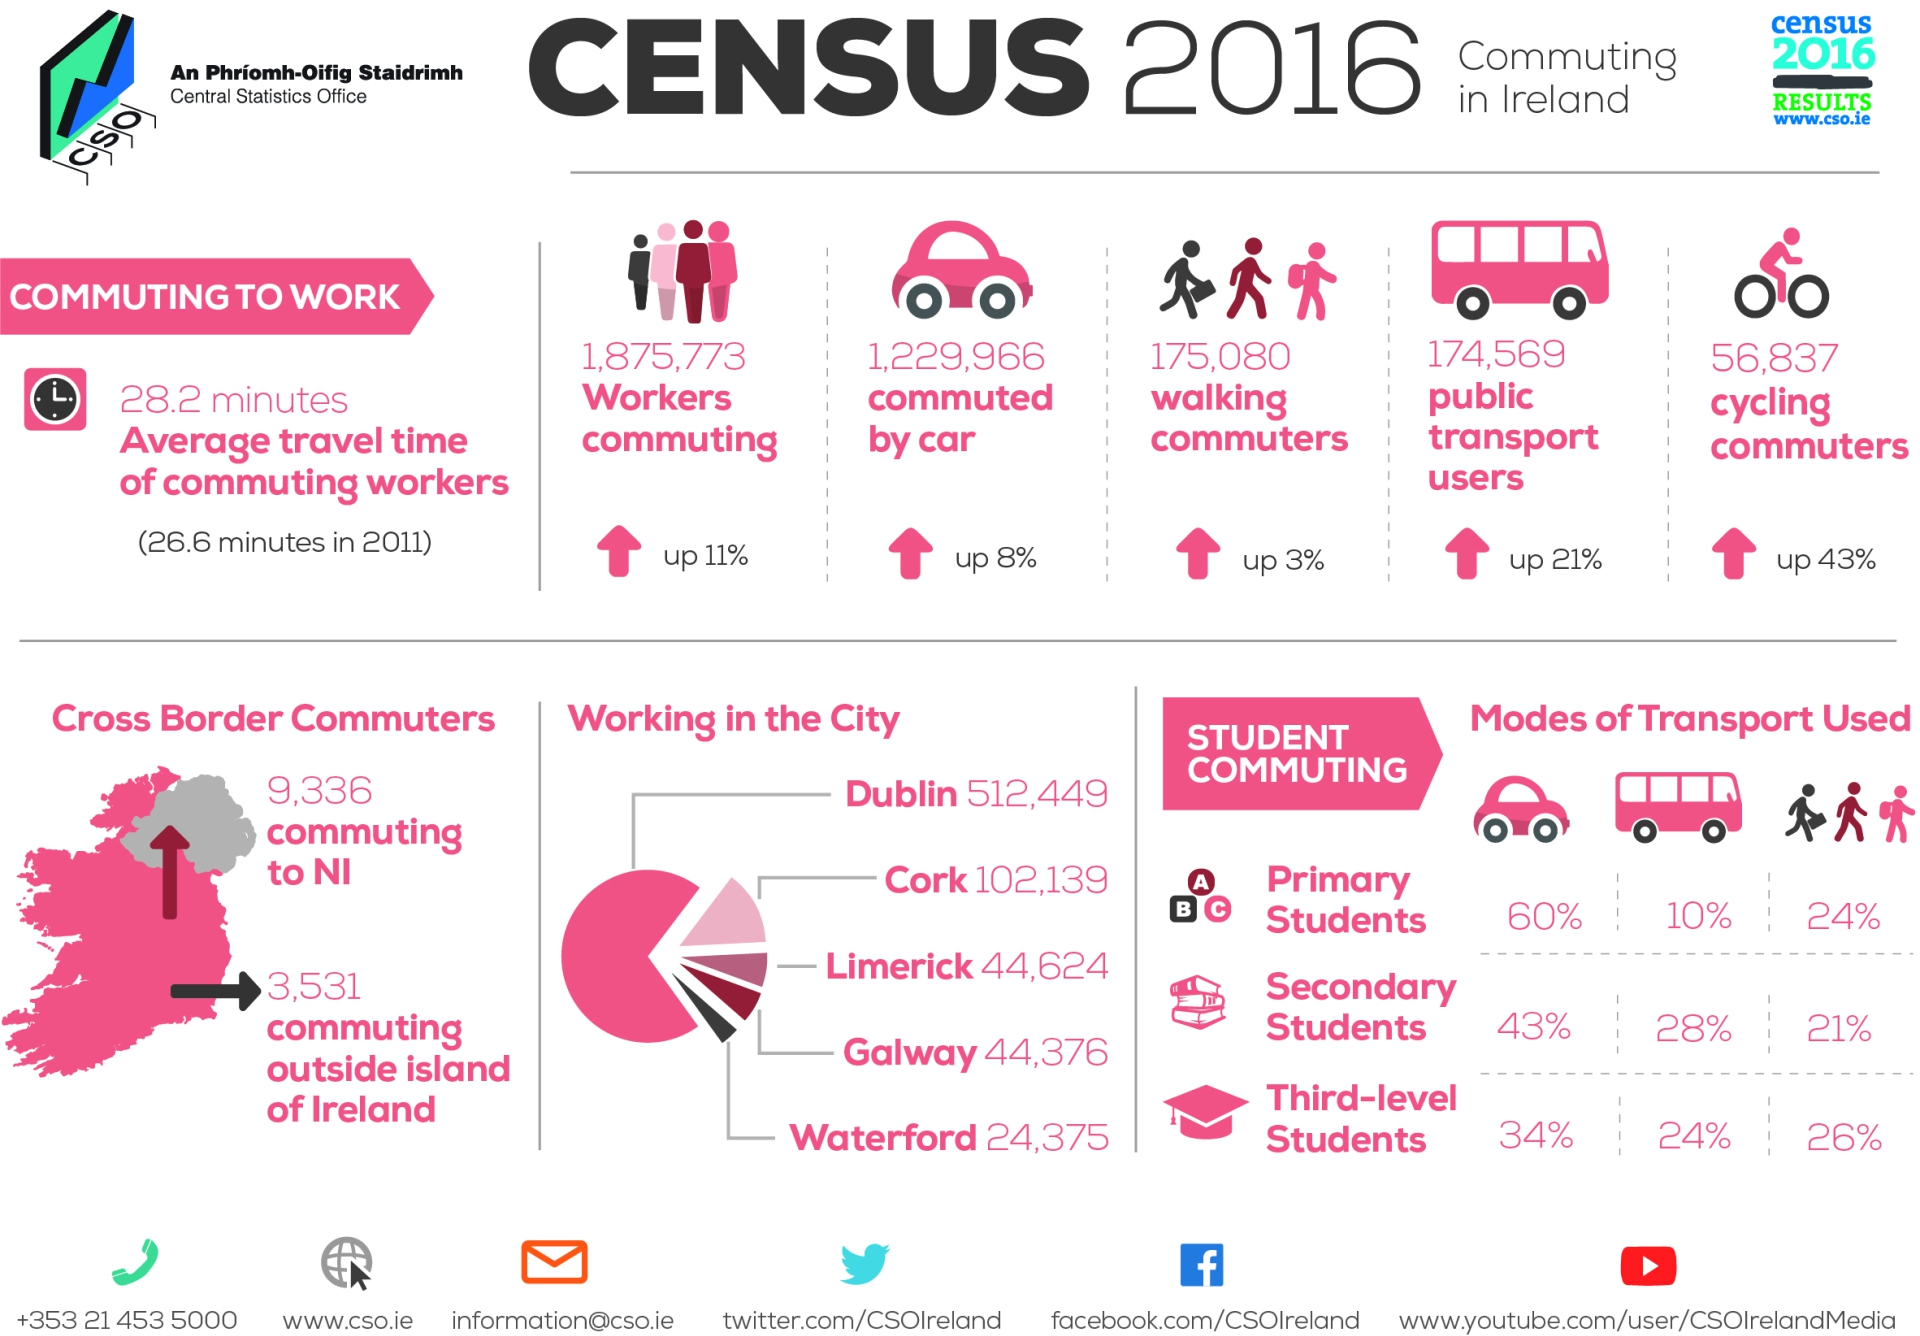 73.2% of Mayo commuters travel to work by vehicle